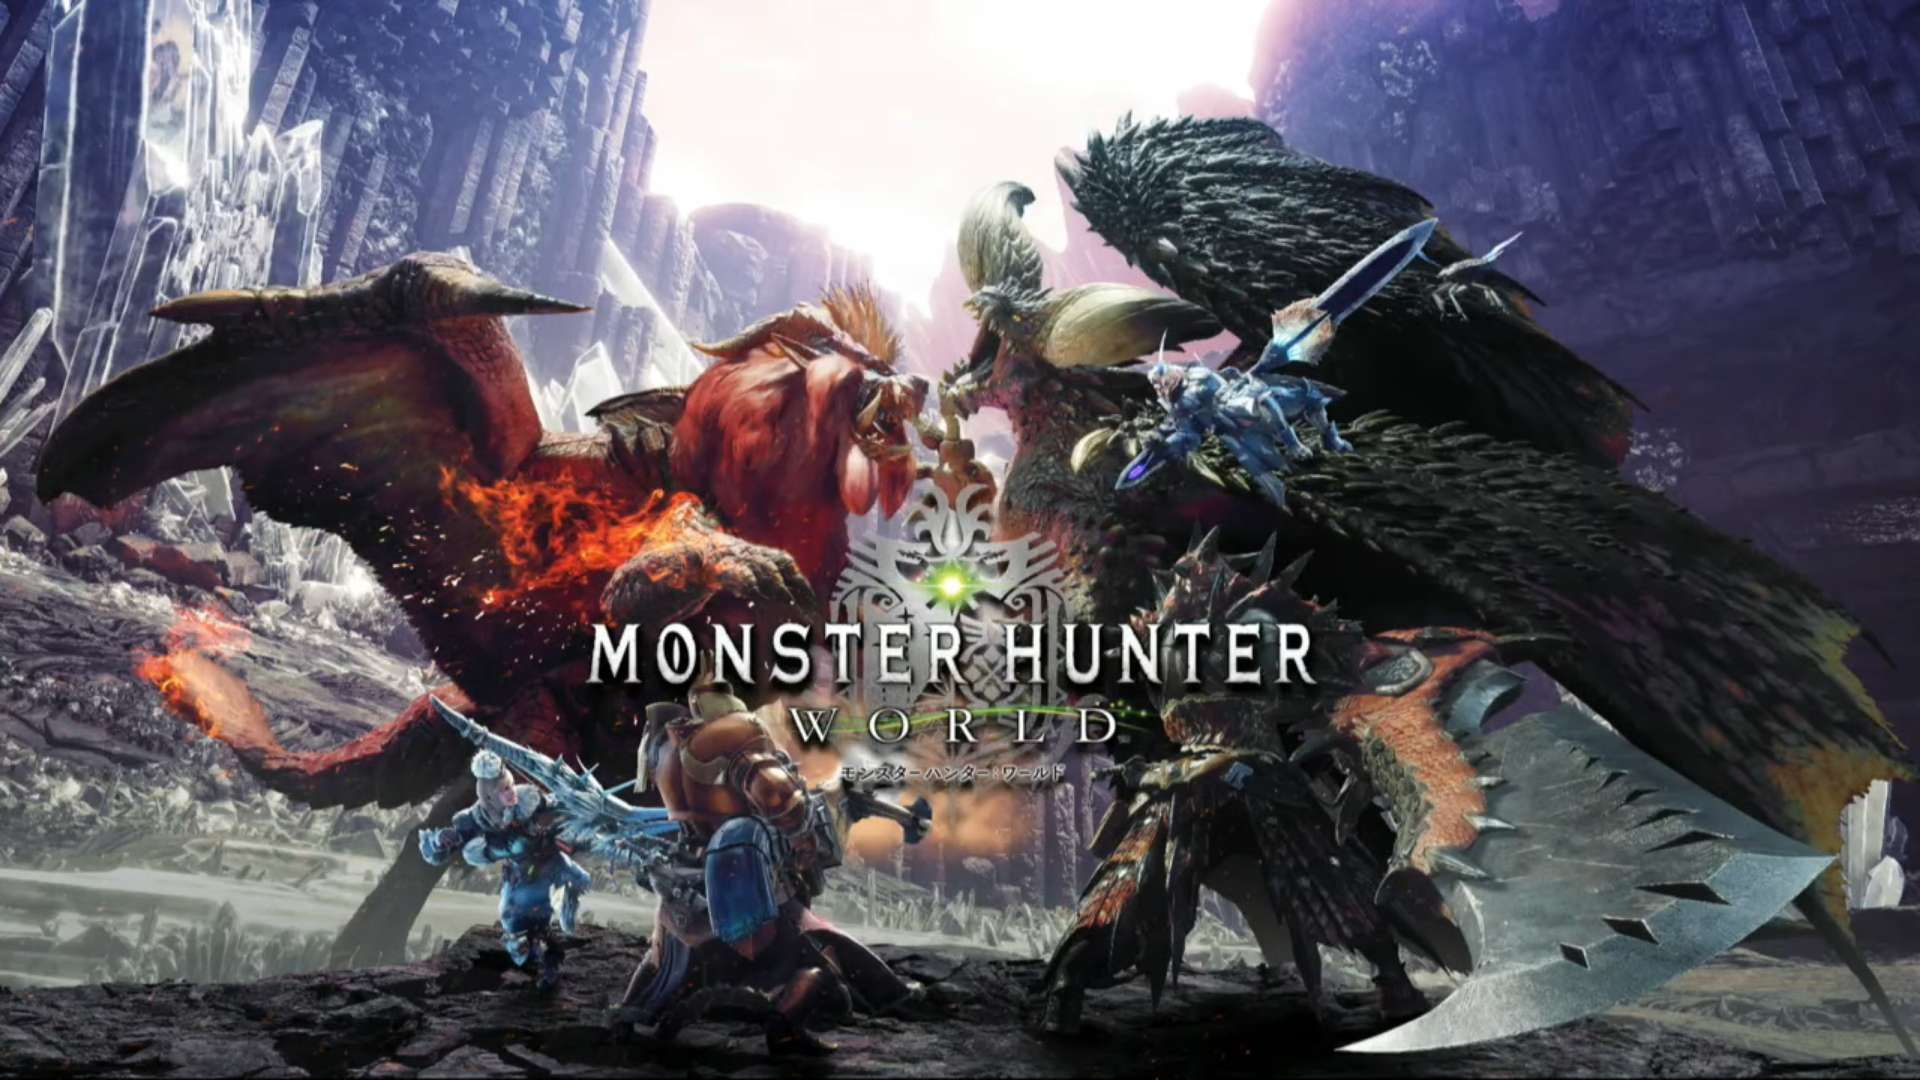 Skyrims Nintendo Switch Developer Offers To Port Monster Hunter World